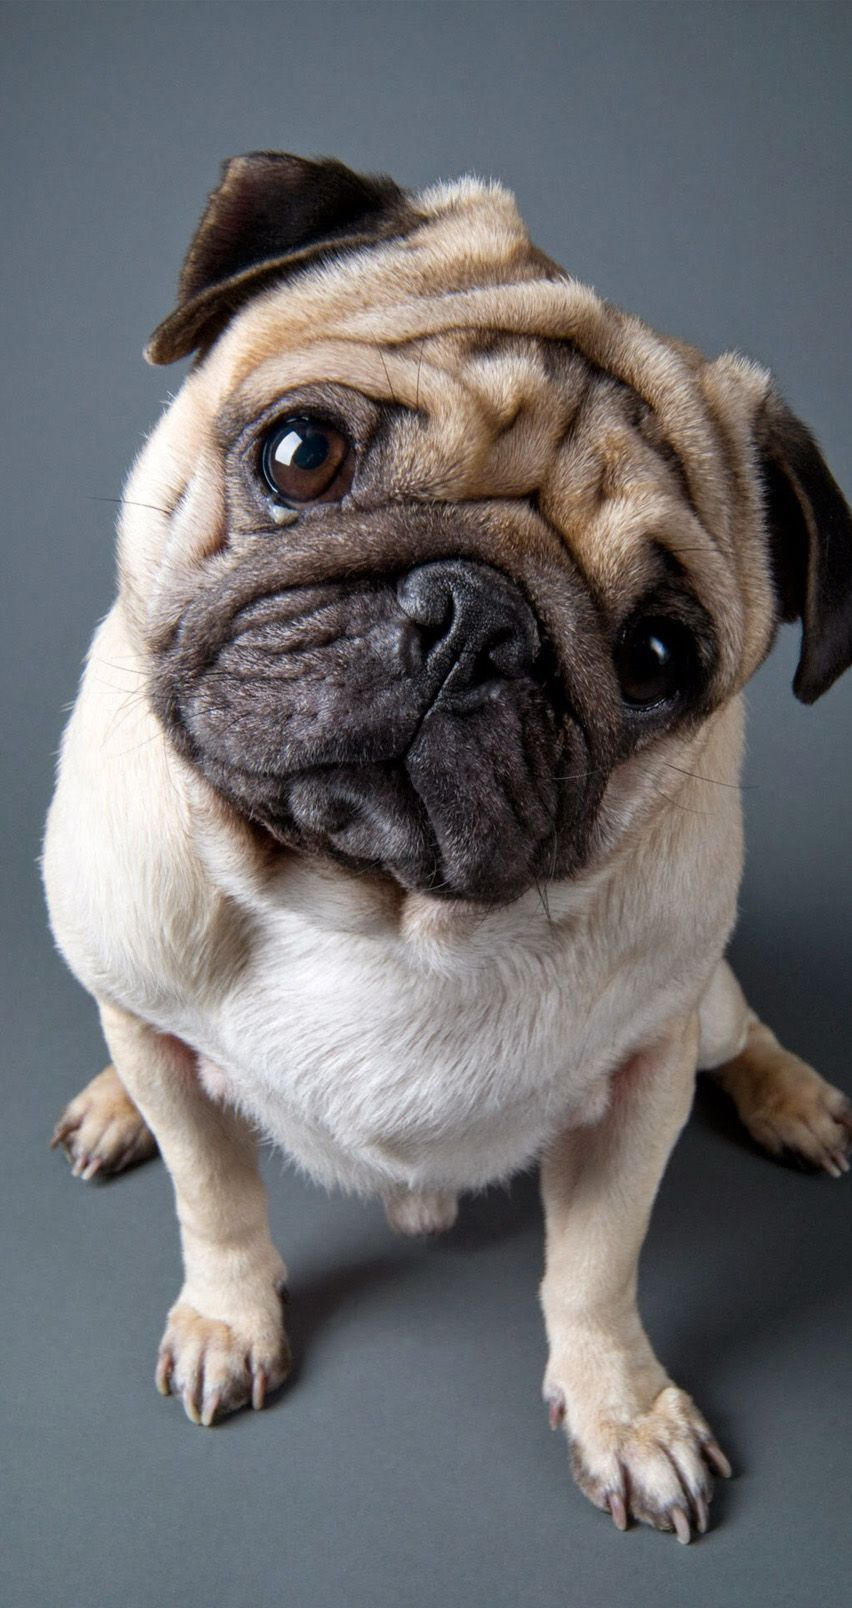 Cute Pug 852 X 1608 Wallpapers Available For Free Download Cute Pugs Dog Wallpaper Pugs